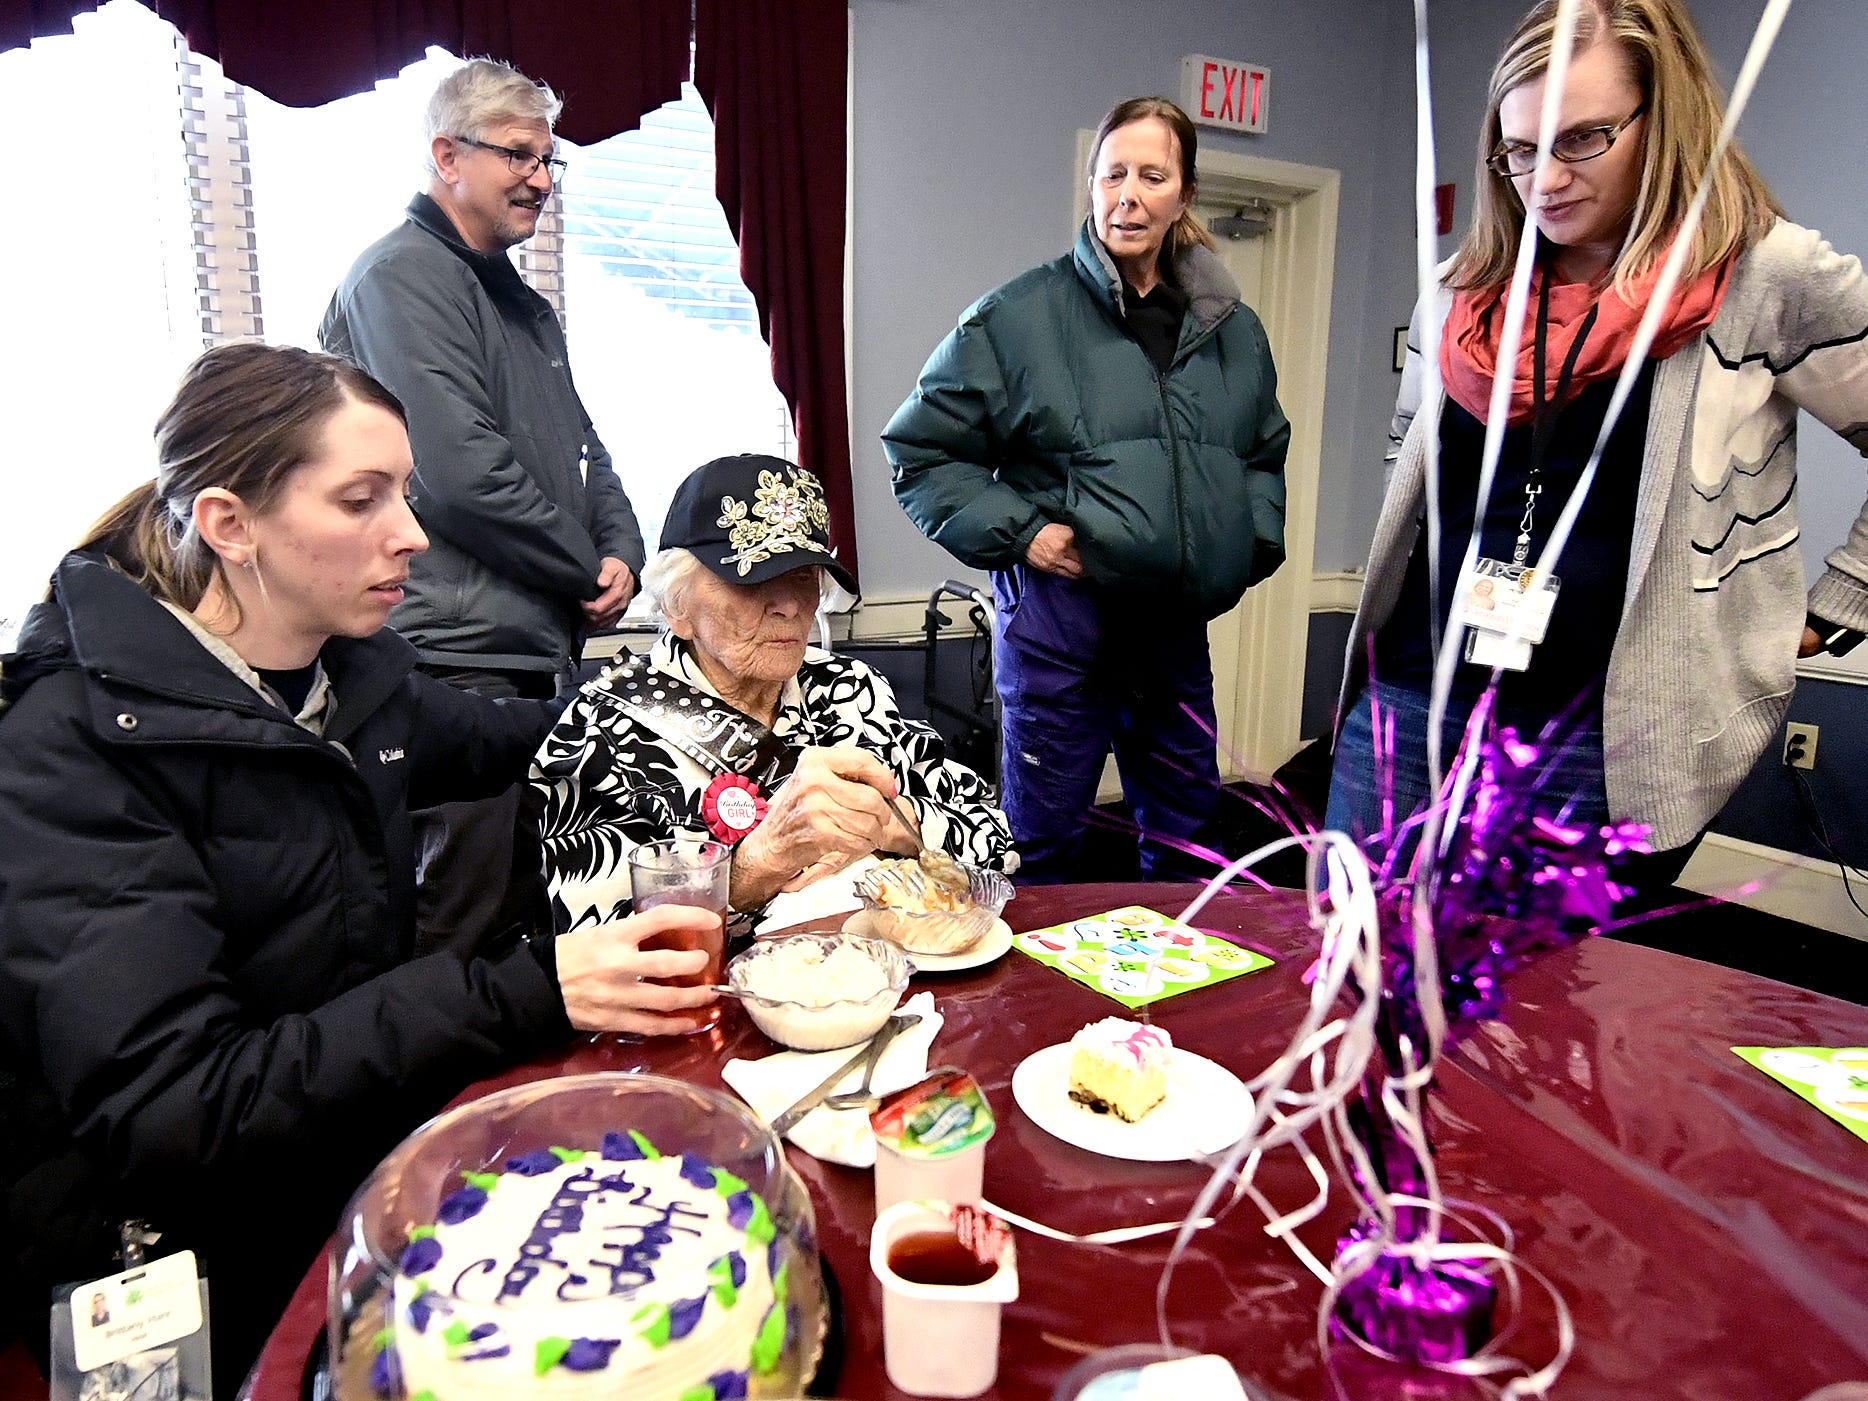 Memorial White Rose Home Health and Hospice aide Brittany Hare, left, and other staff surround Ruth Kohler during Ruth's 104th birthday celebration at Senior Commons at Powder Mill where Ruth is a resident Friday, Feb. 1, 2019. According to Senior Commons staff, she is the oldest resident to have lived there. Bill Kalina photo